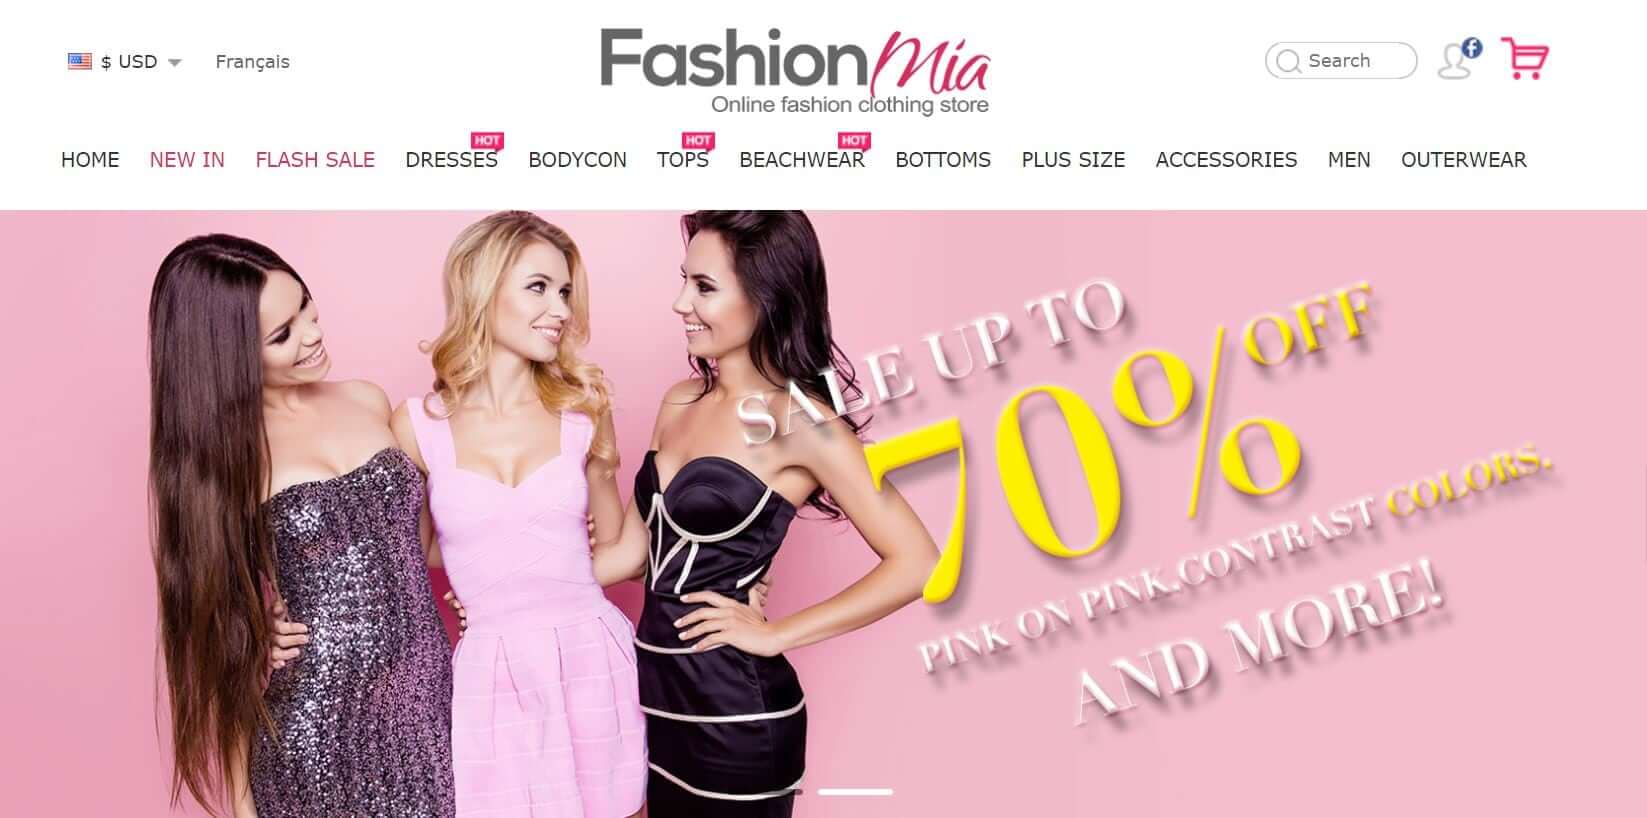 2eaeb1cebc9 FashionMia Affiliate Program with an Incredible Payout (Up to 12%)!